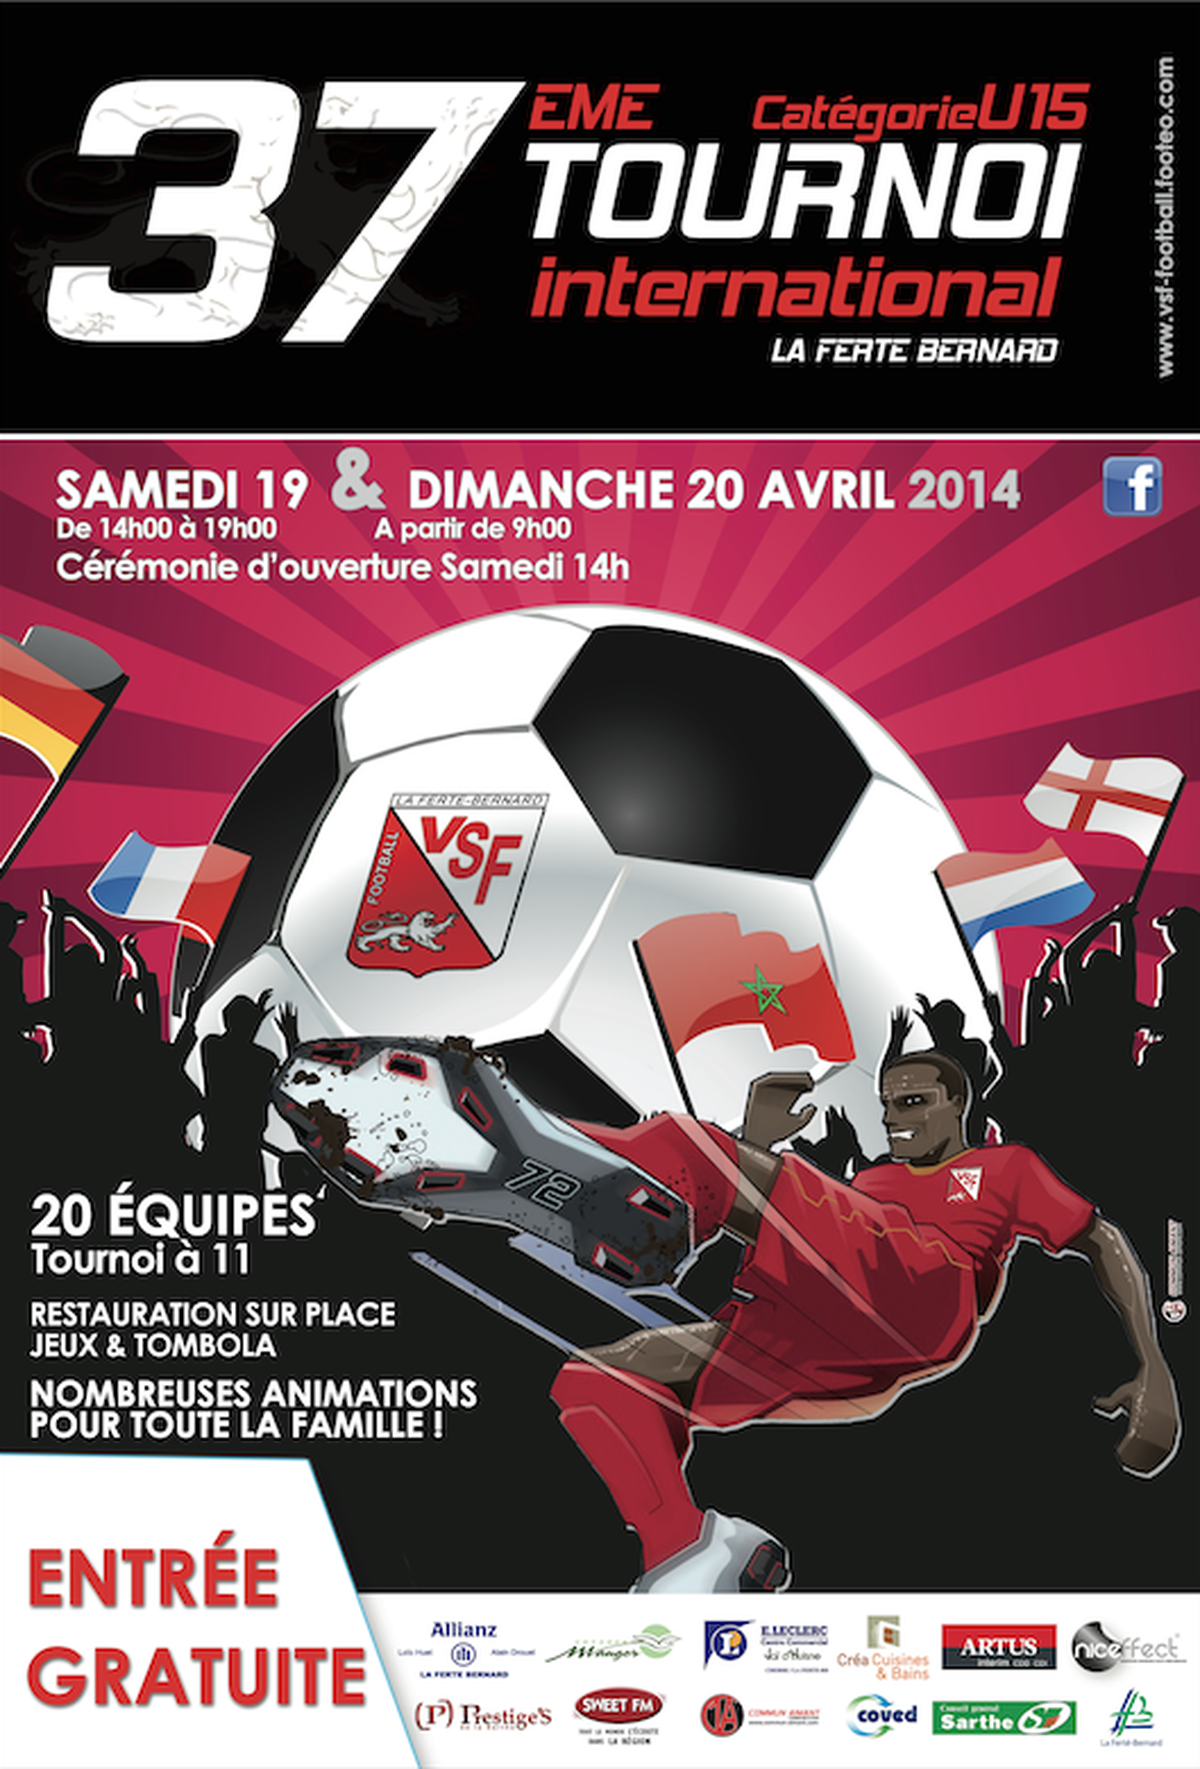 37 ème TOURNOI INTERNATIONAL